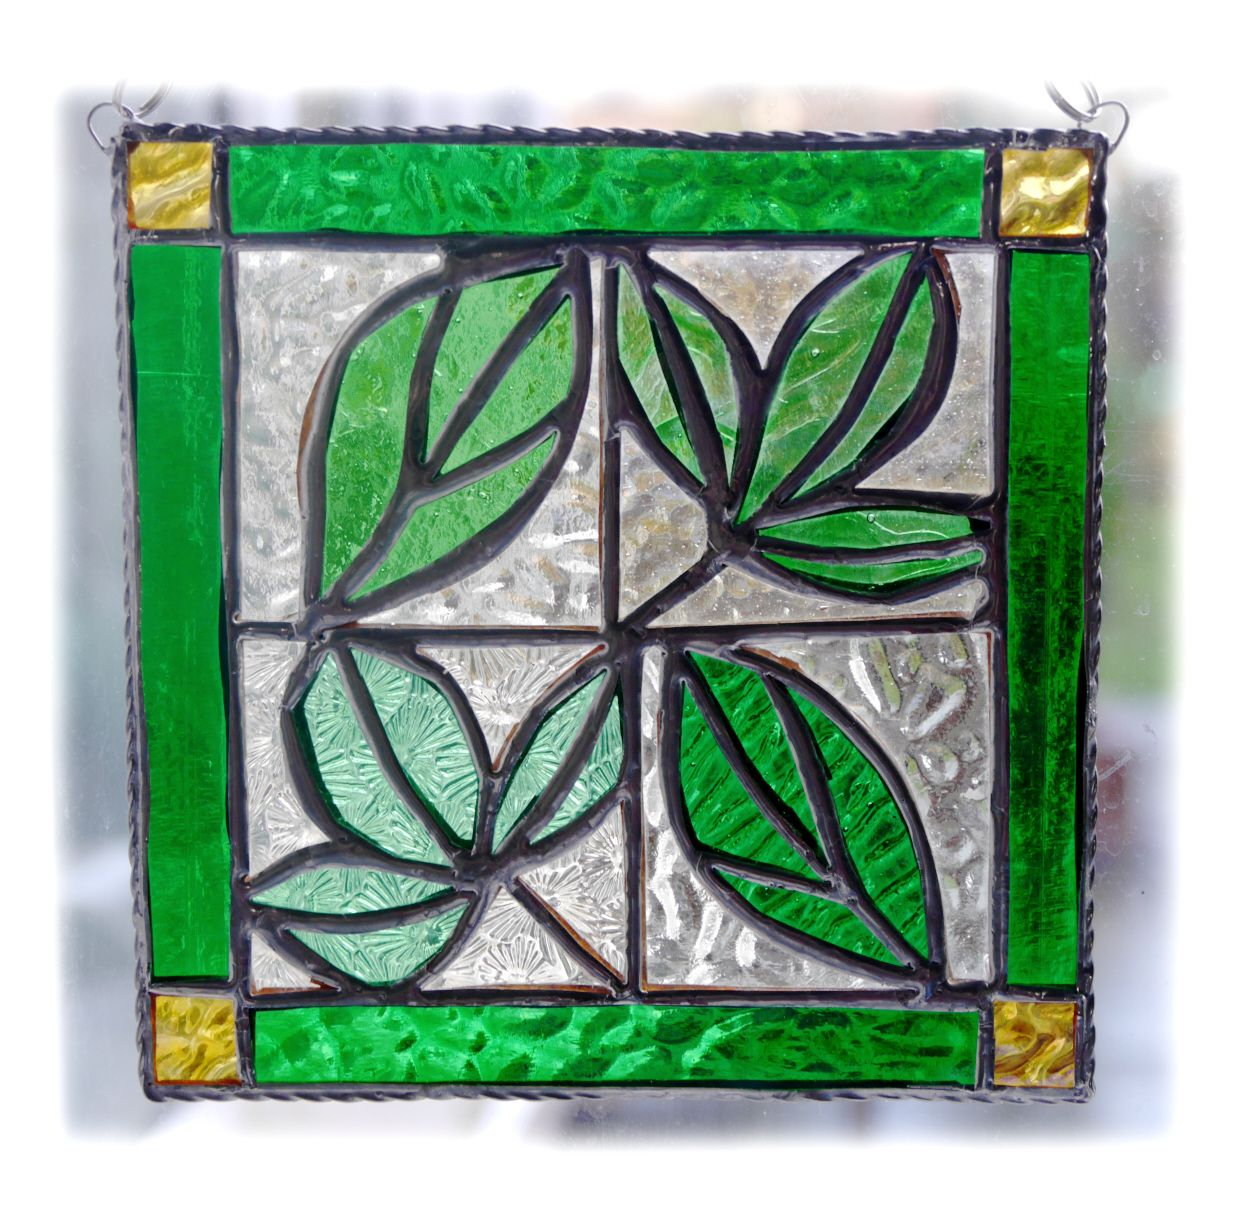 GREEN Leaf Tile 003 Green #1902 FREE 27.50